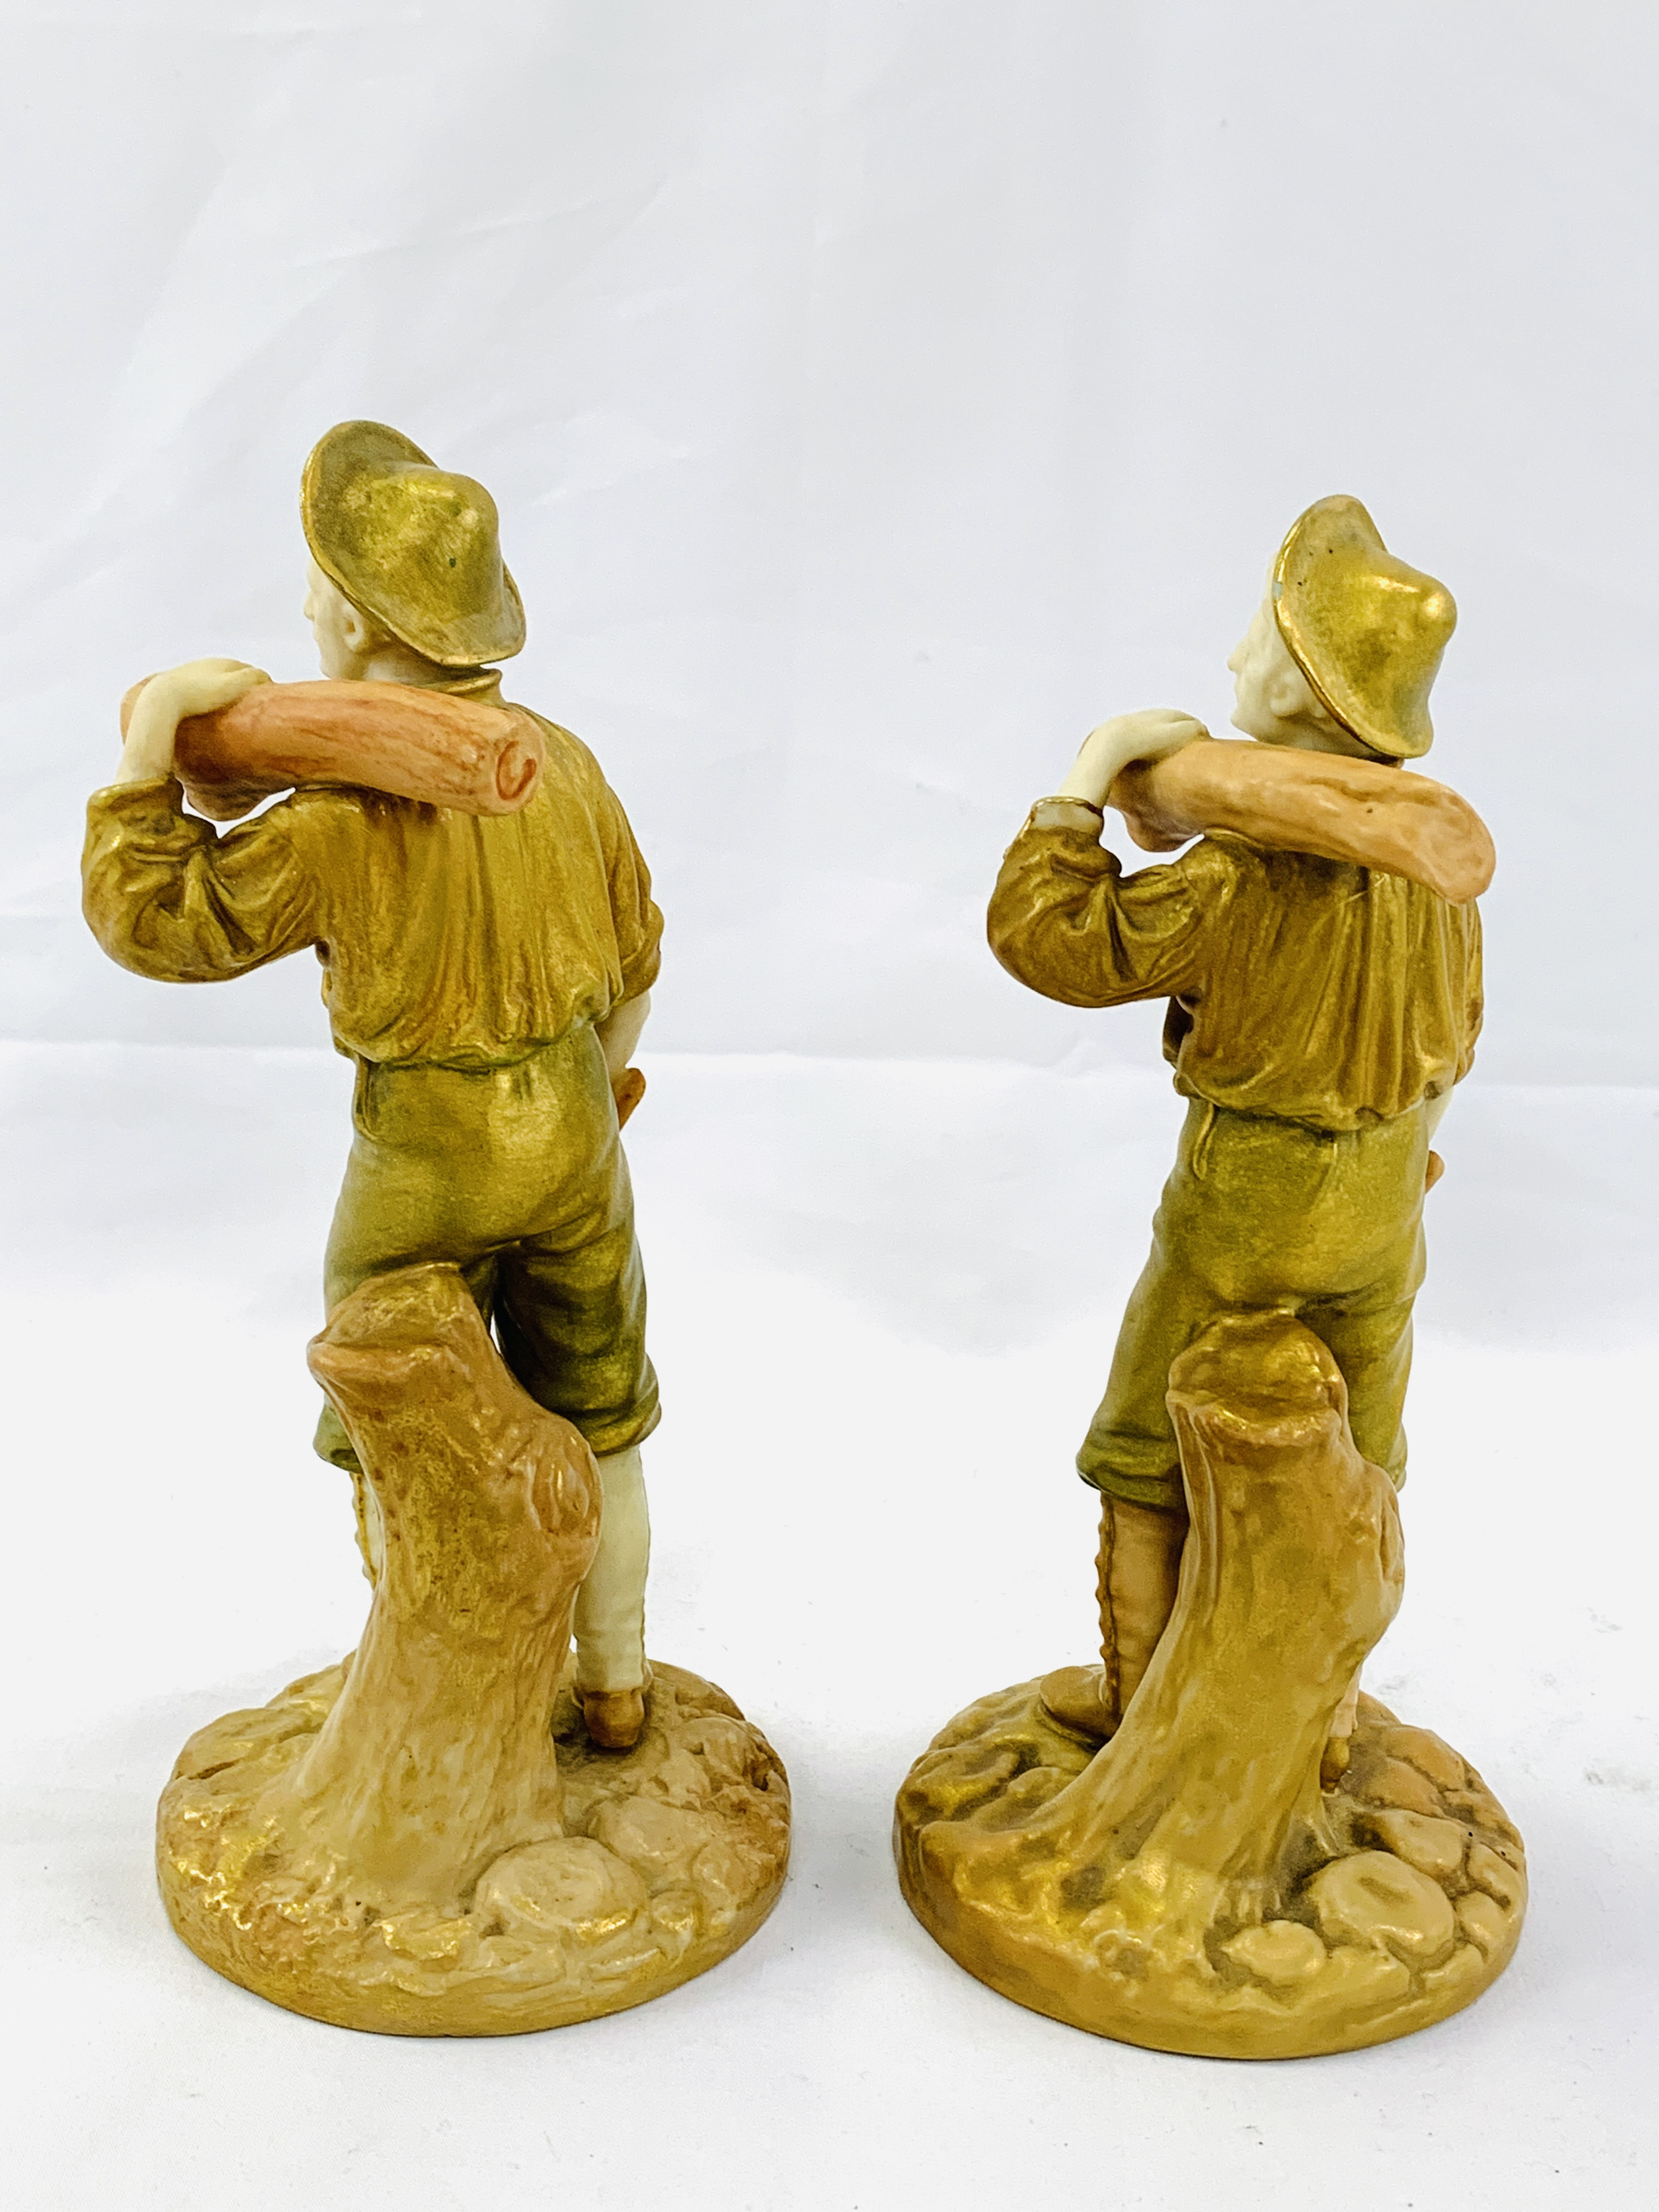 """Two 19th Century Royal Worcester figurines """"The Woodman"""" - Image 3 of 3"""